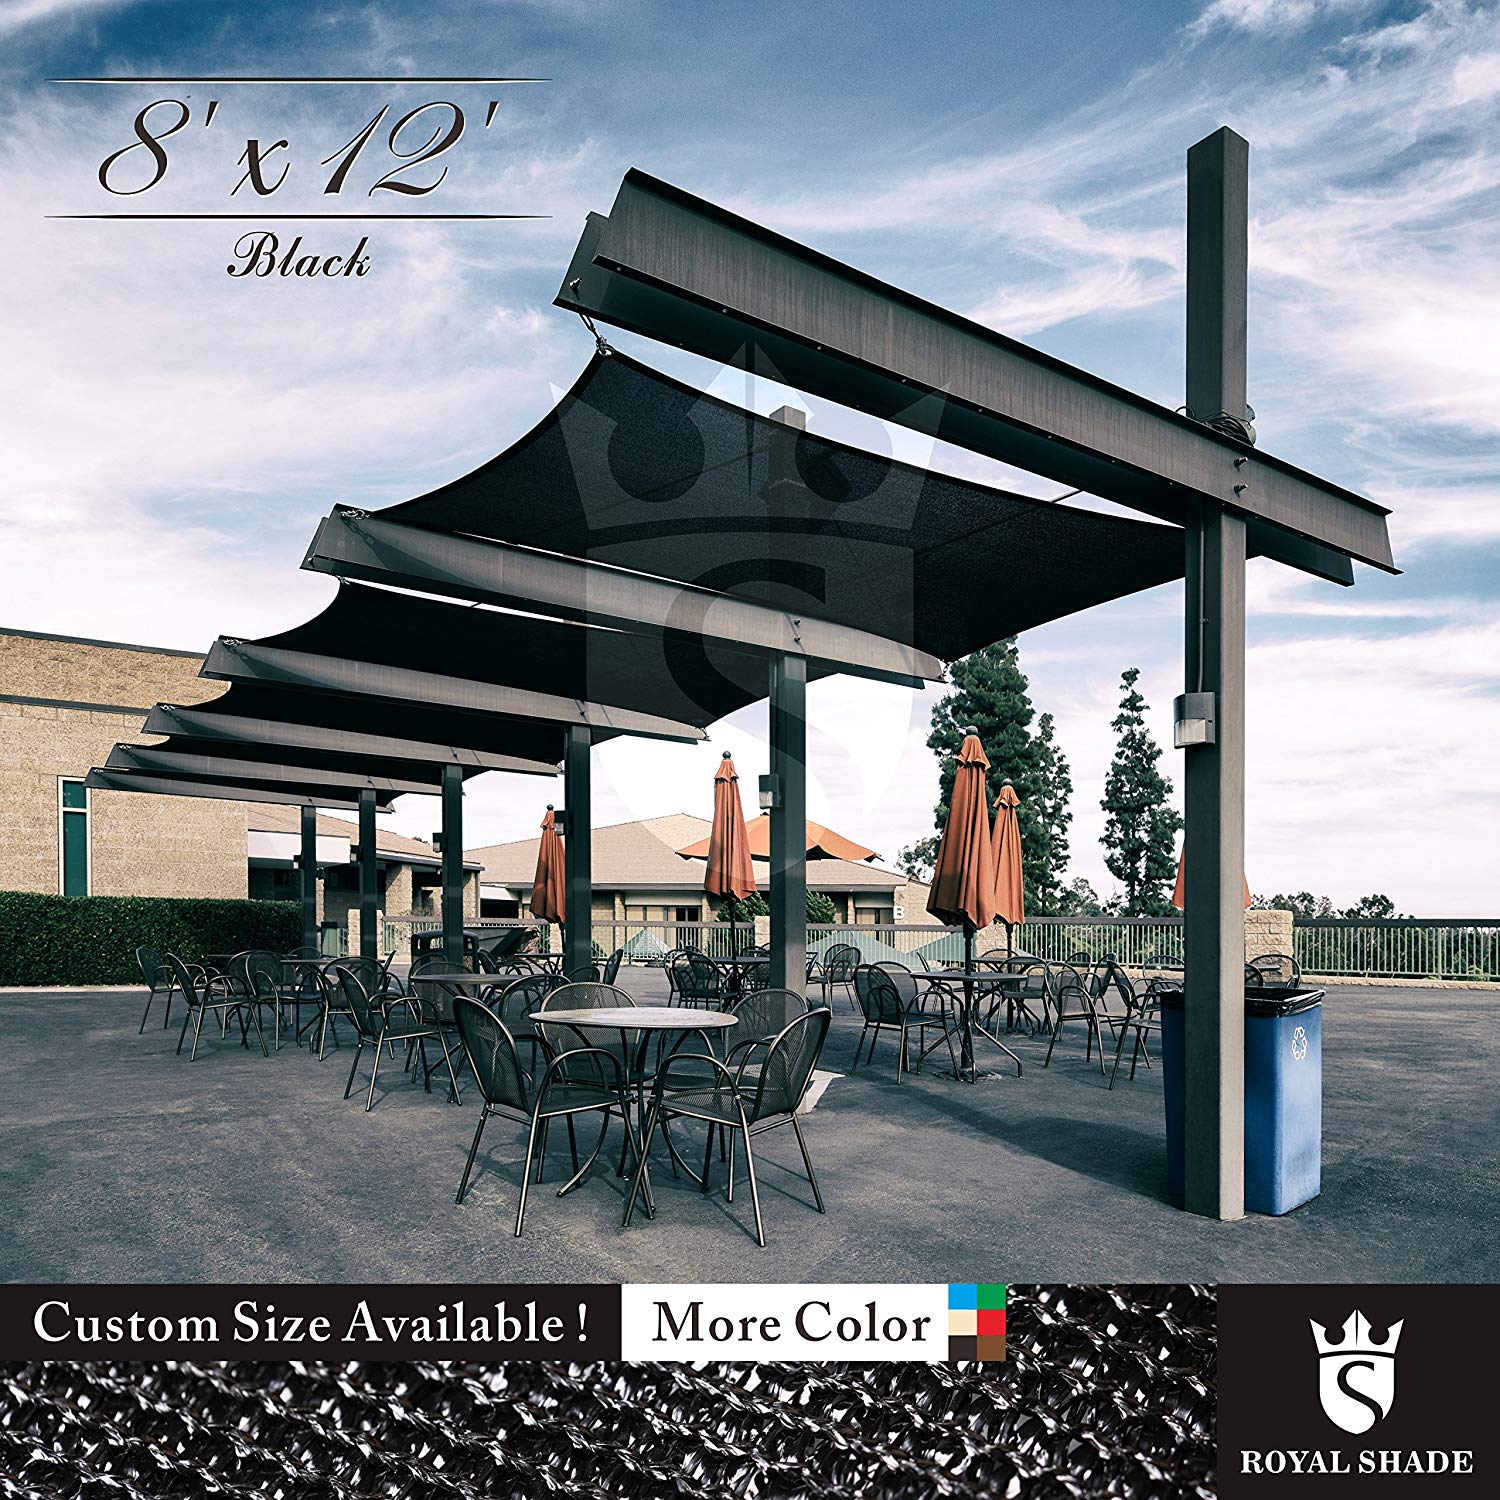 75cef0fcf10 Get Quotations · Royal Shade 8  x 12  Black Rectangle Sun Shade Sail Canopy  Outdoor Patio Fabric